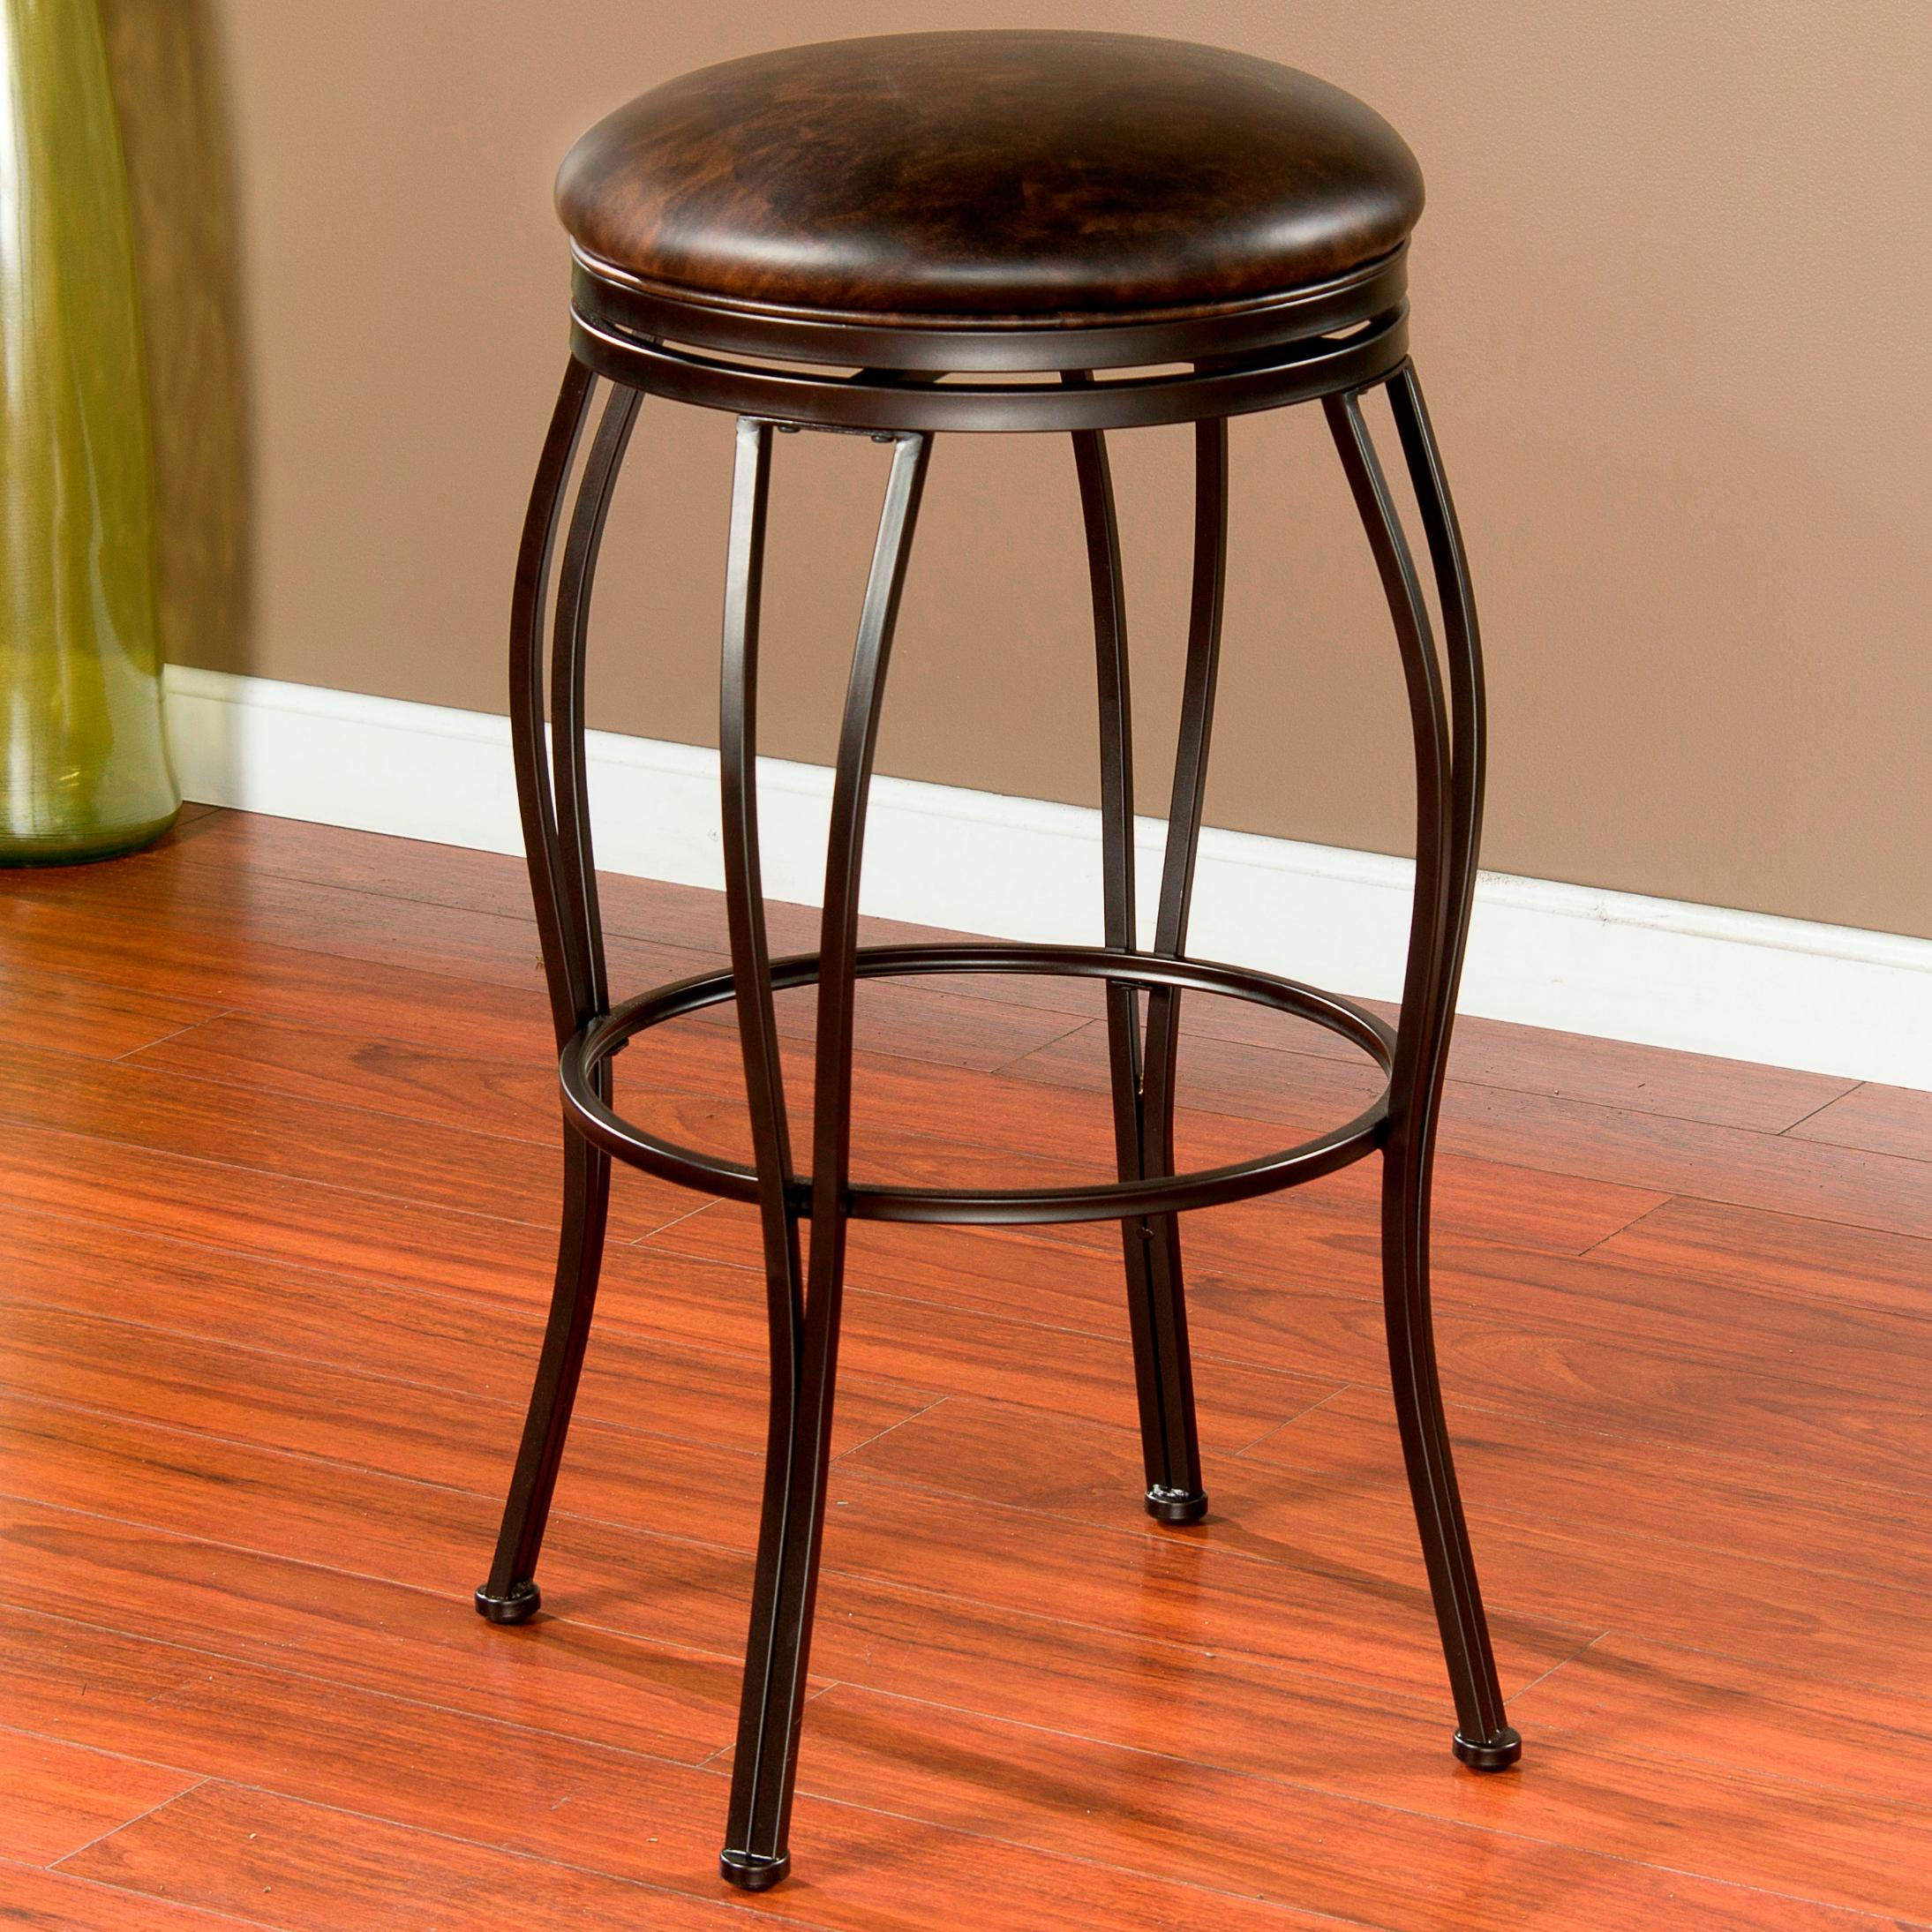 "American Heritage Billiards Bar Stools 26"" Romano Bar Stool - Item Number: 124941CC"